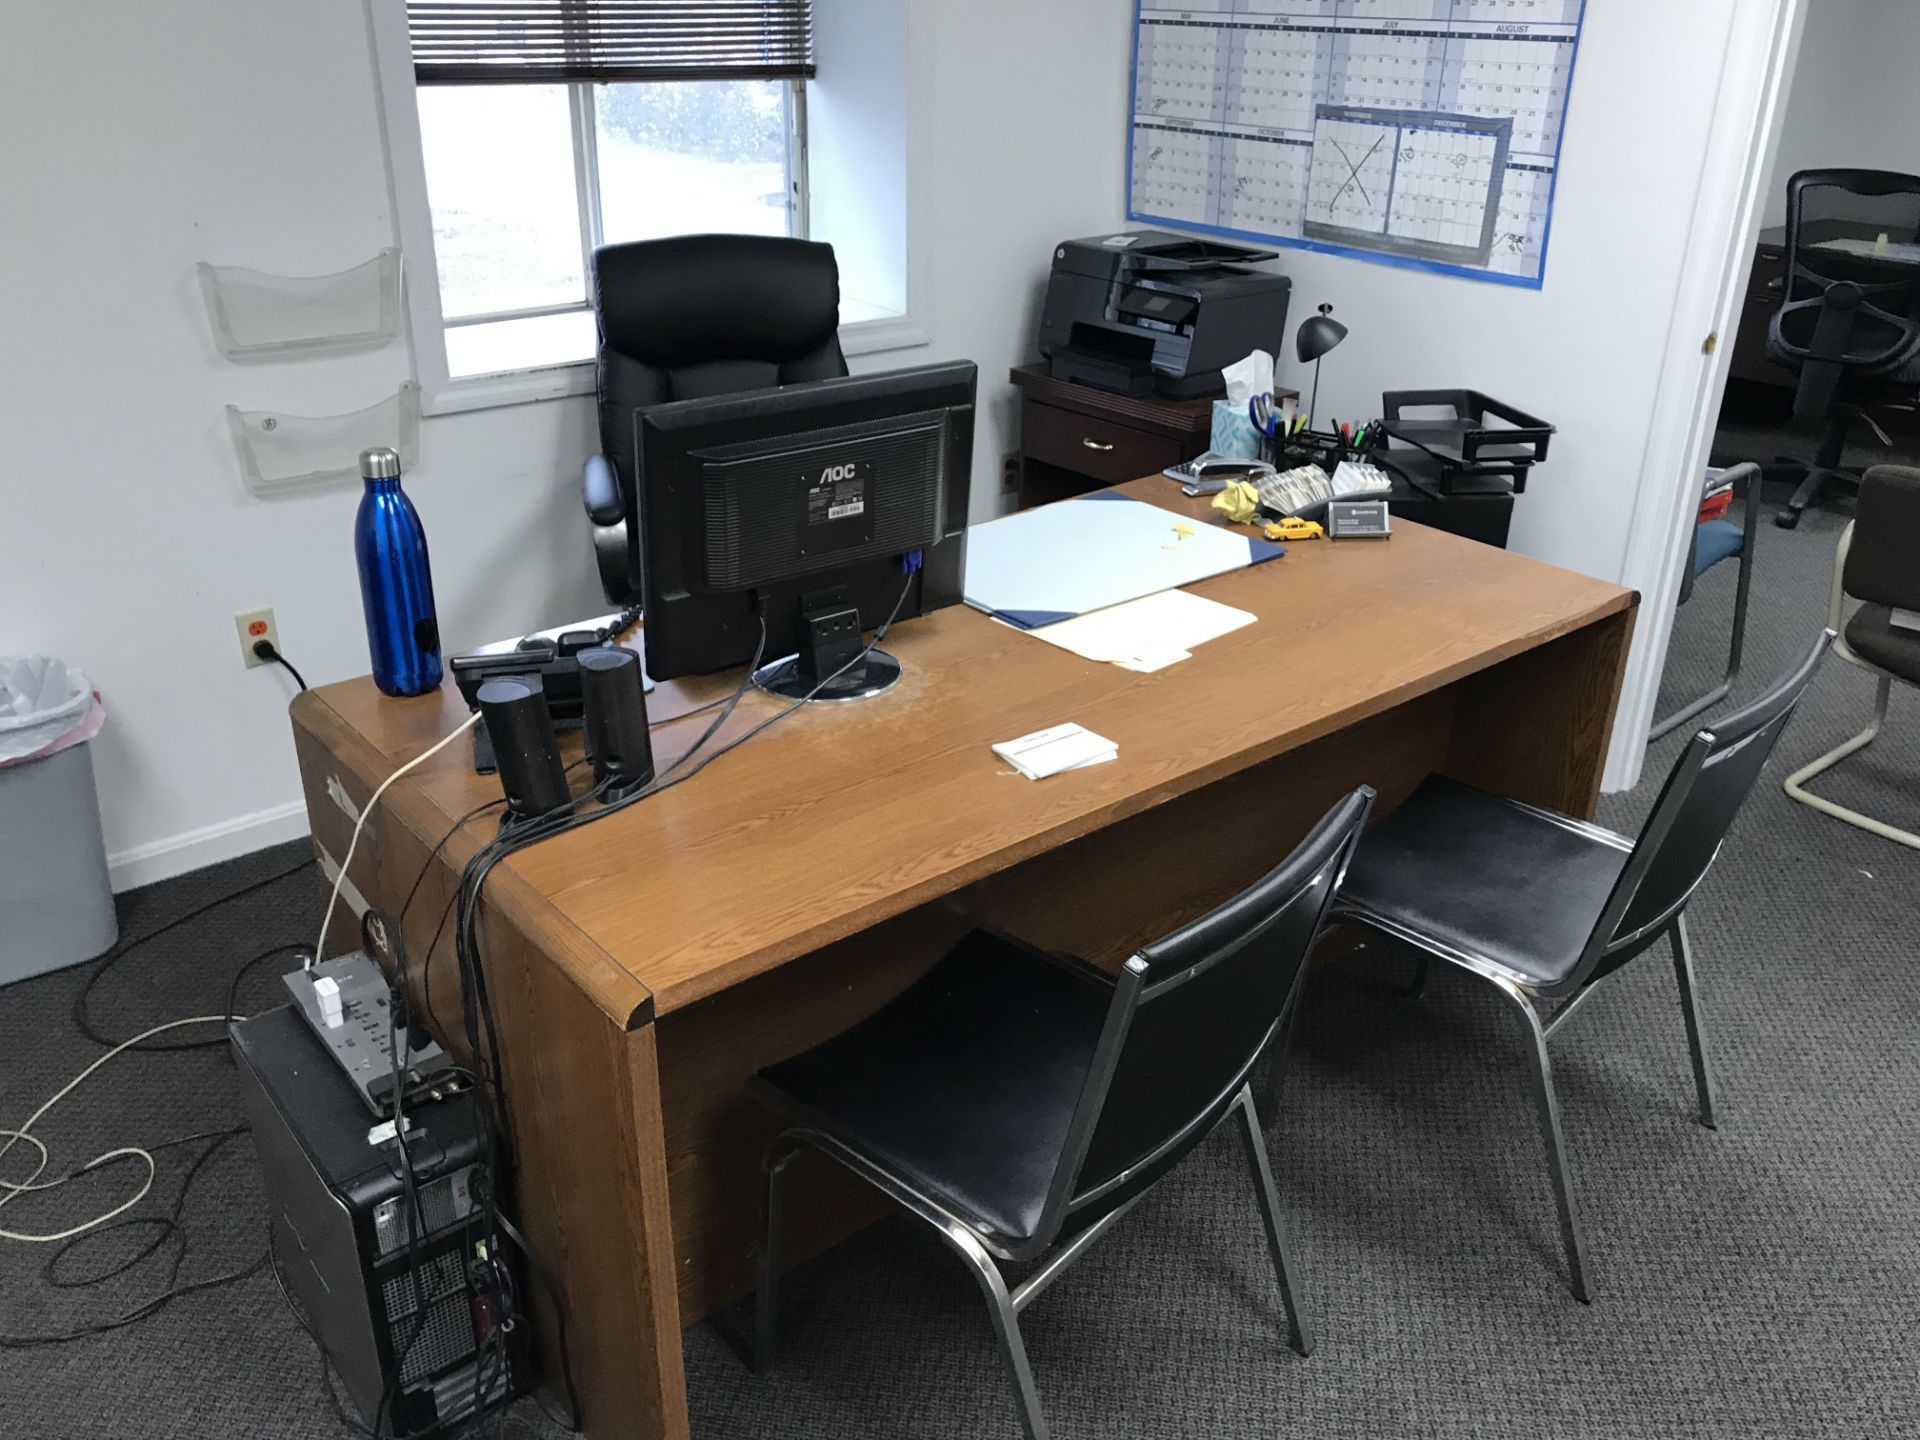 Lot 2 - {LOT} Asst. Furniture in Office c/o: Desks, Chairs & Files